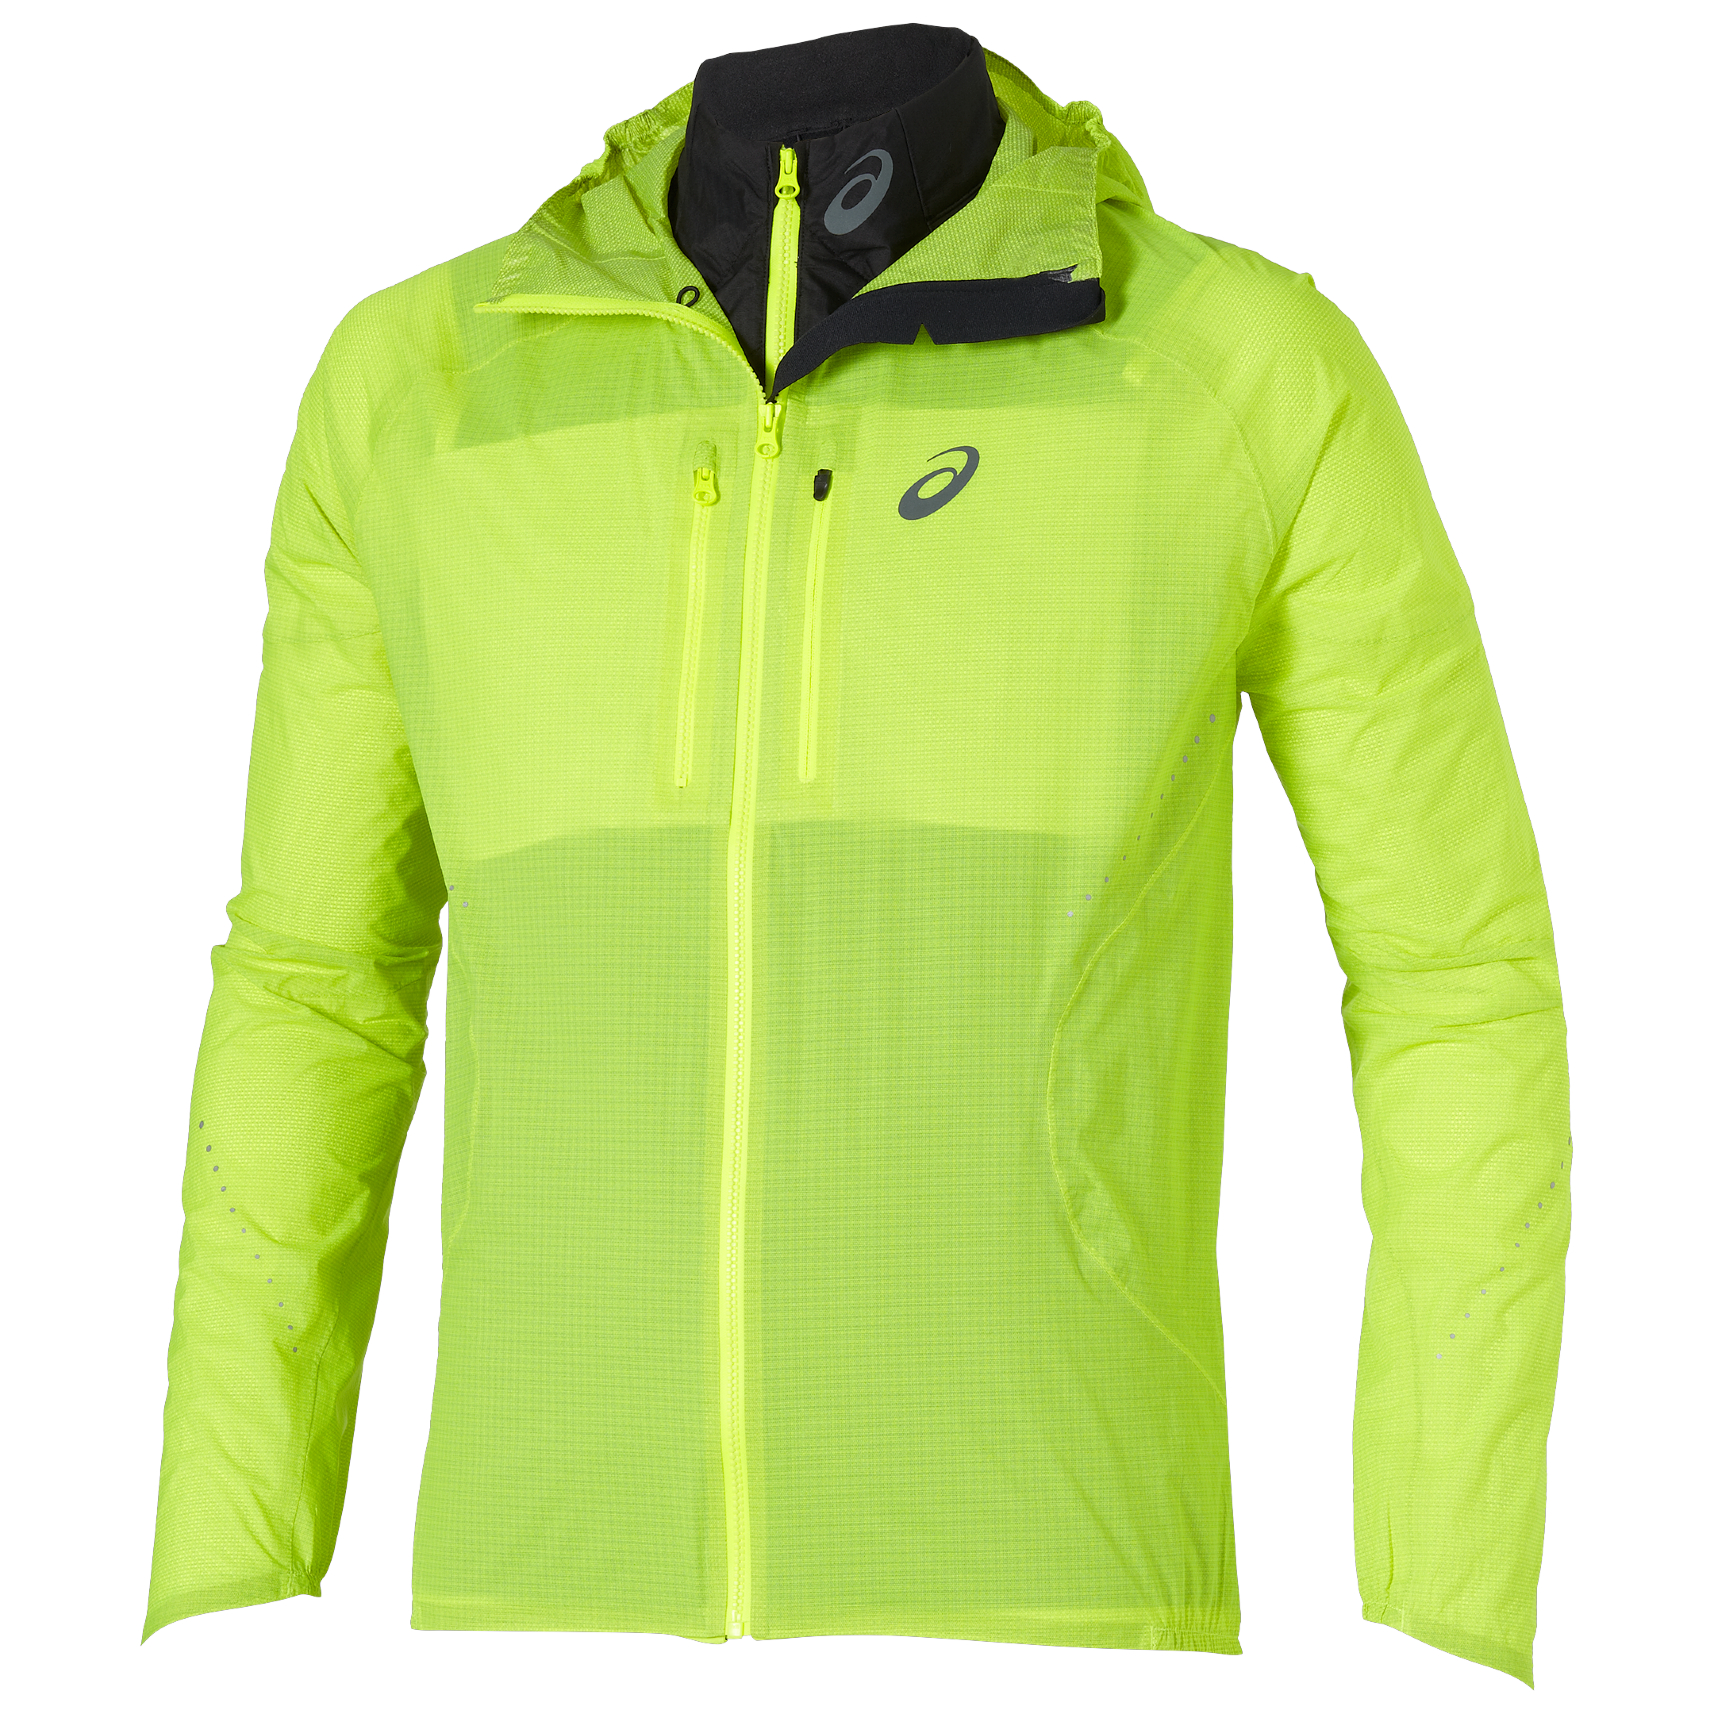 asics packable jacket womens yellow